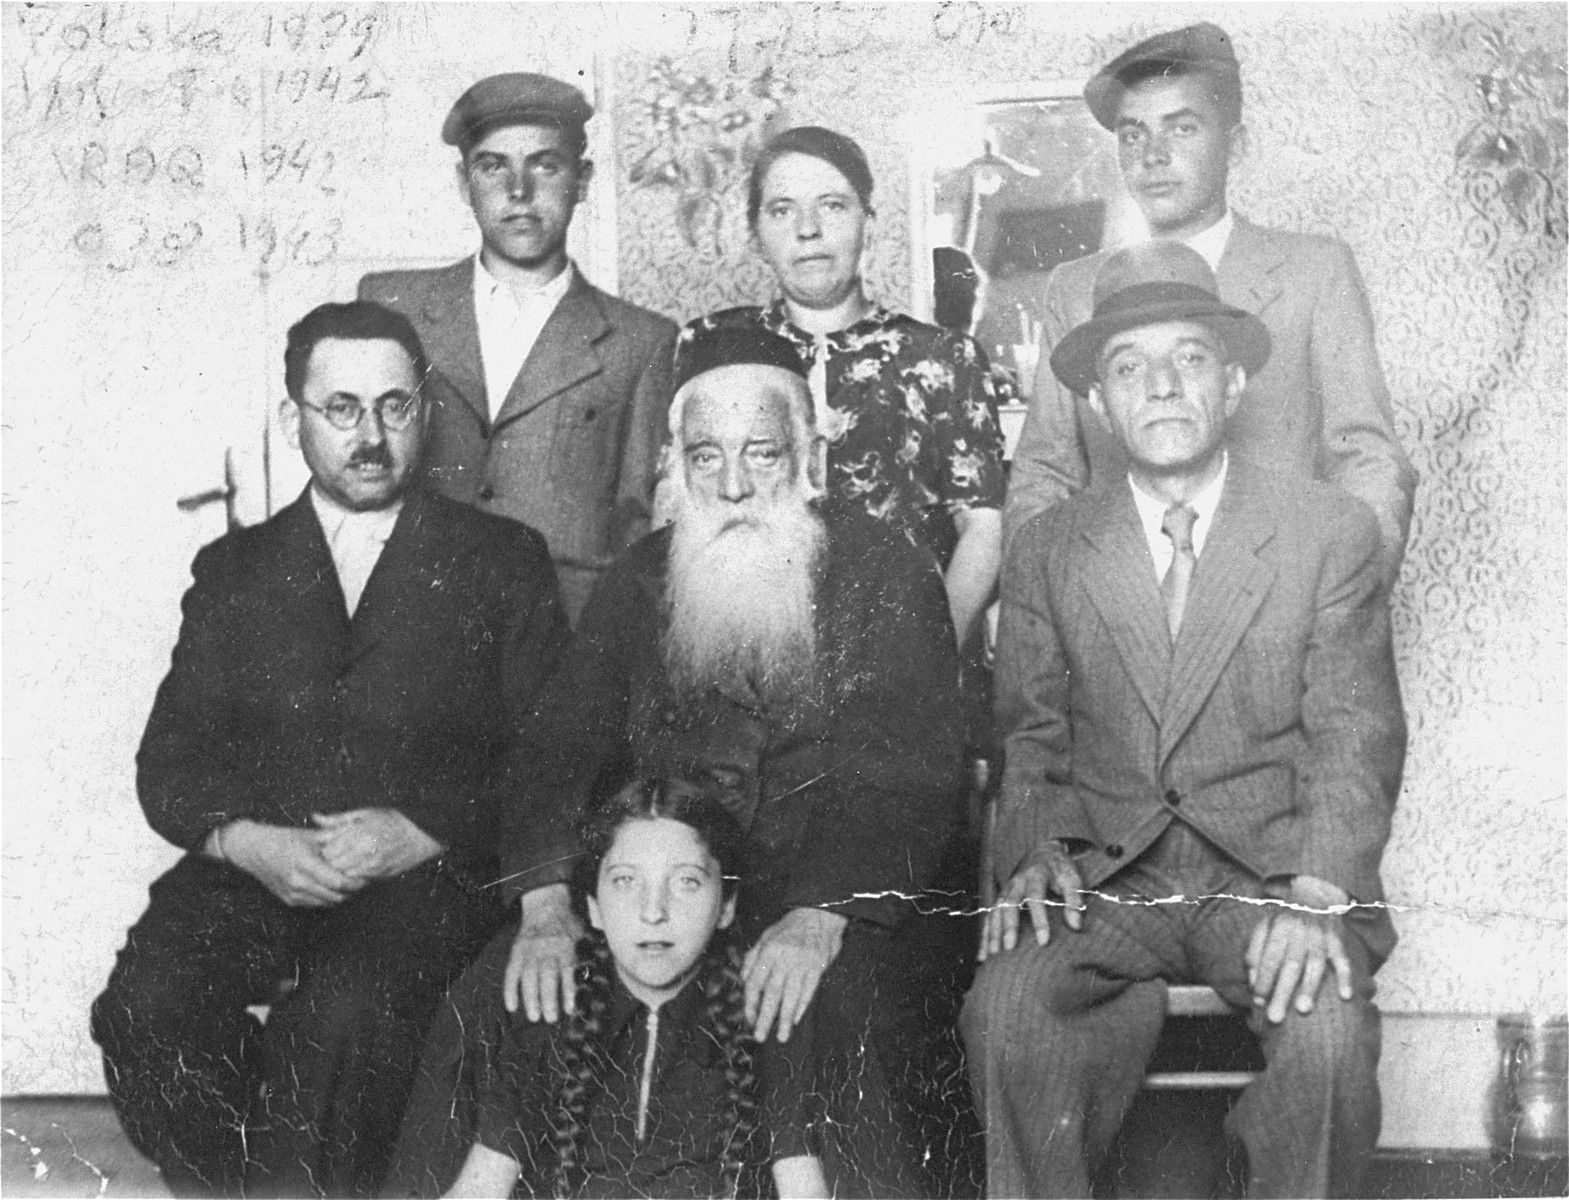 A family photograph taken on the occasion of Joshua Heilman, the donor, leaving for Palestine.    Standing, from the right:  Joshua; his mother, Rebecca; his brother, Zev.  Sitting, from the right are: Josef Rost, donor's maternal uncle; Noe Rost, a maternal grandfather, who was a government official responsible for registration of births, weddings and deaths in the Jewish community;  Shraga Faivel Heilman, donor's father and Roza Shoshana, donor's sister, sitting in front of her grandfather.  Joshua Heilman, also known as Oskar Henryk, left for Palestine on August 22, 1939.  He studied at the Hebrew University in Jerusalem and in 1942 enlisted in the British army.